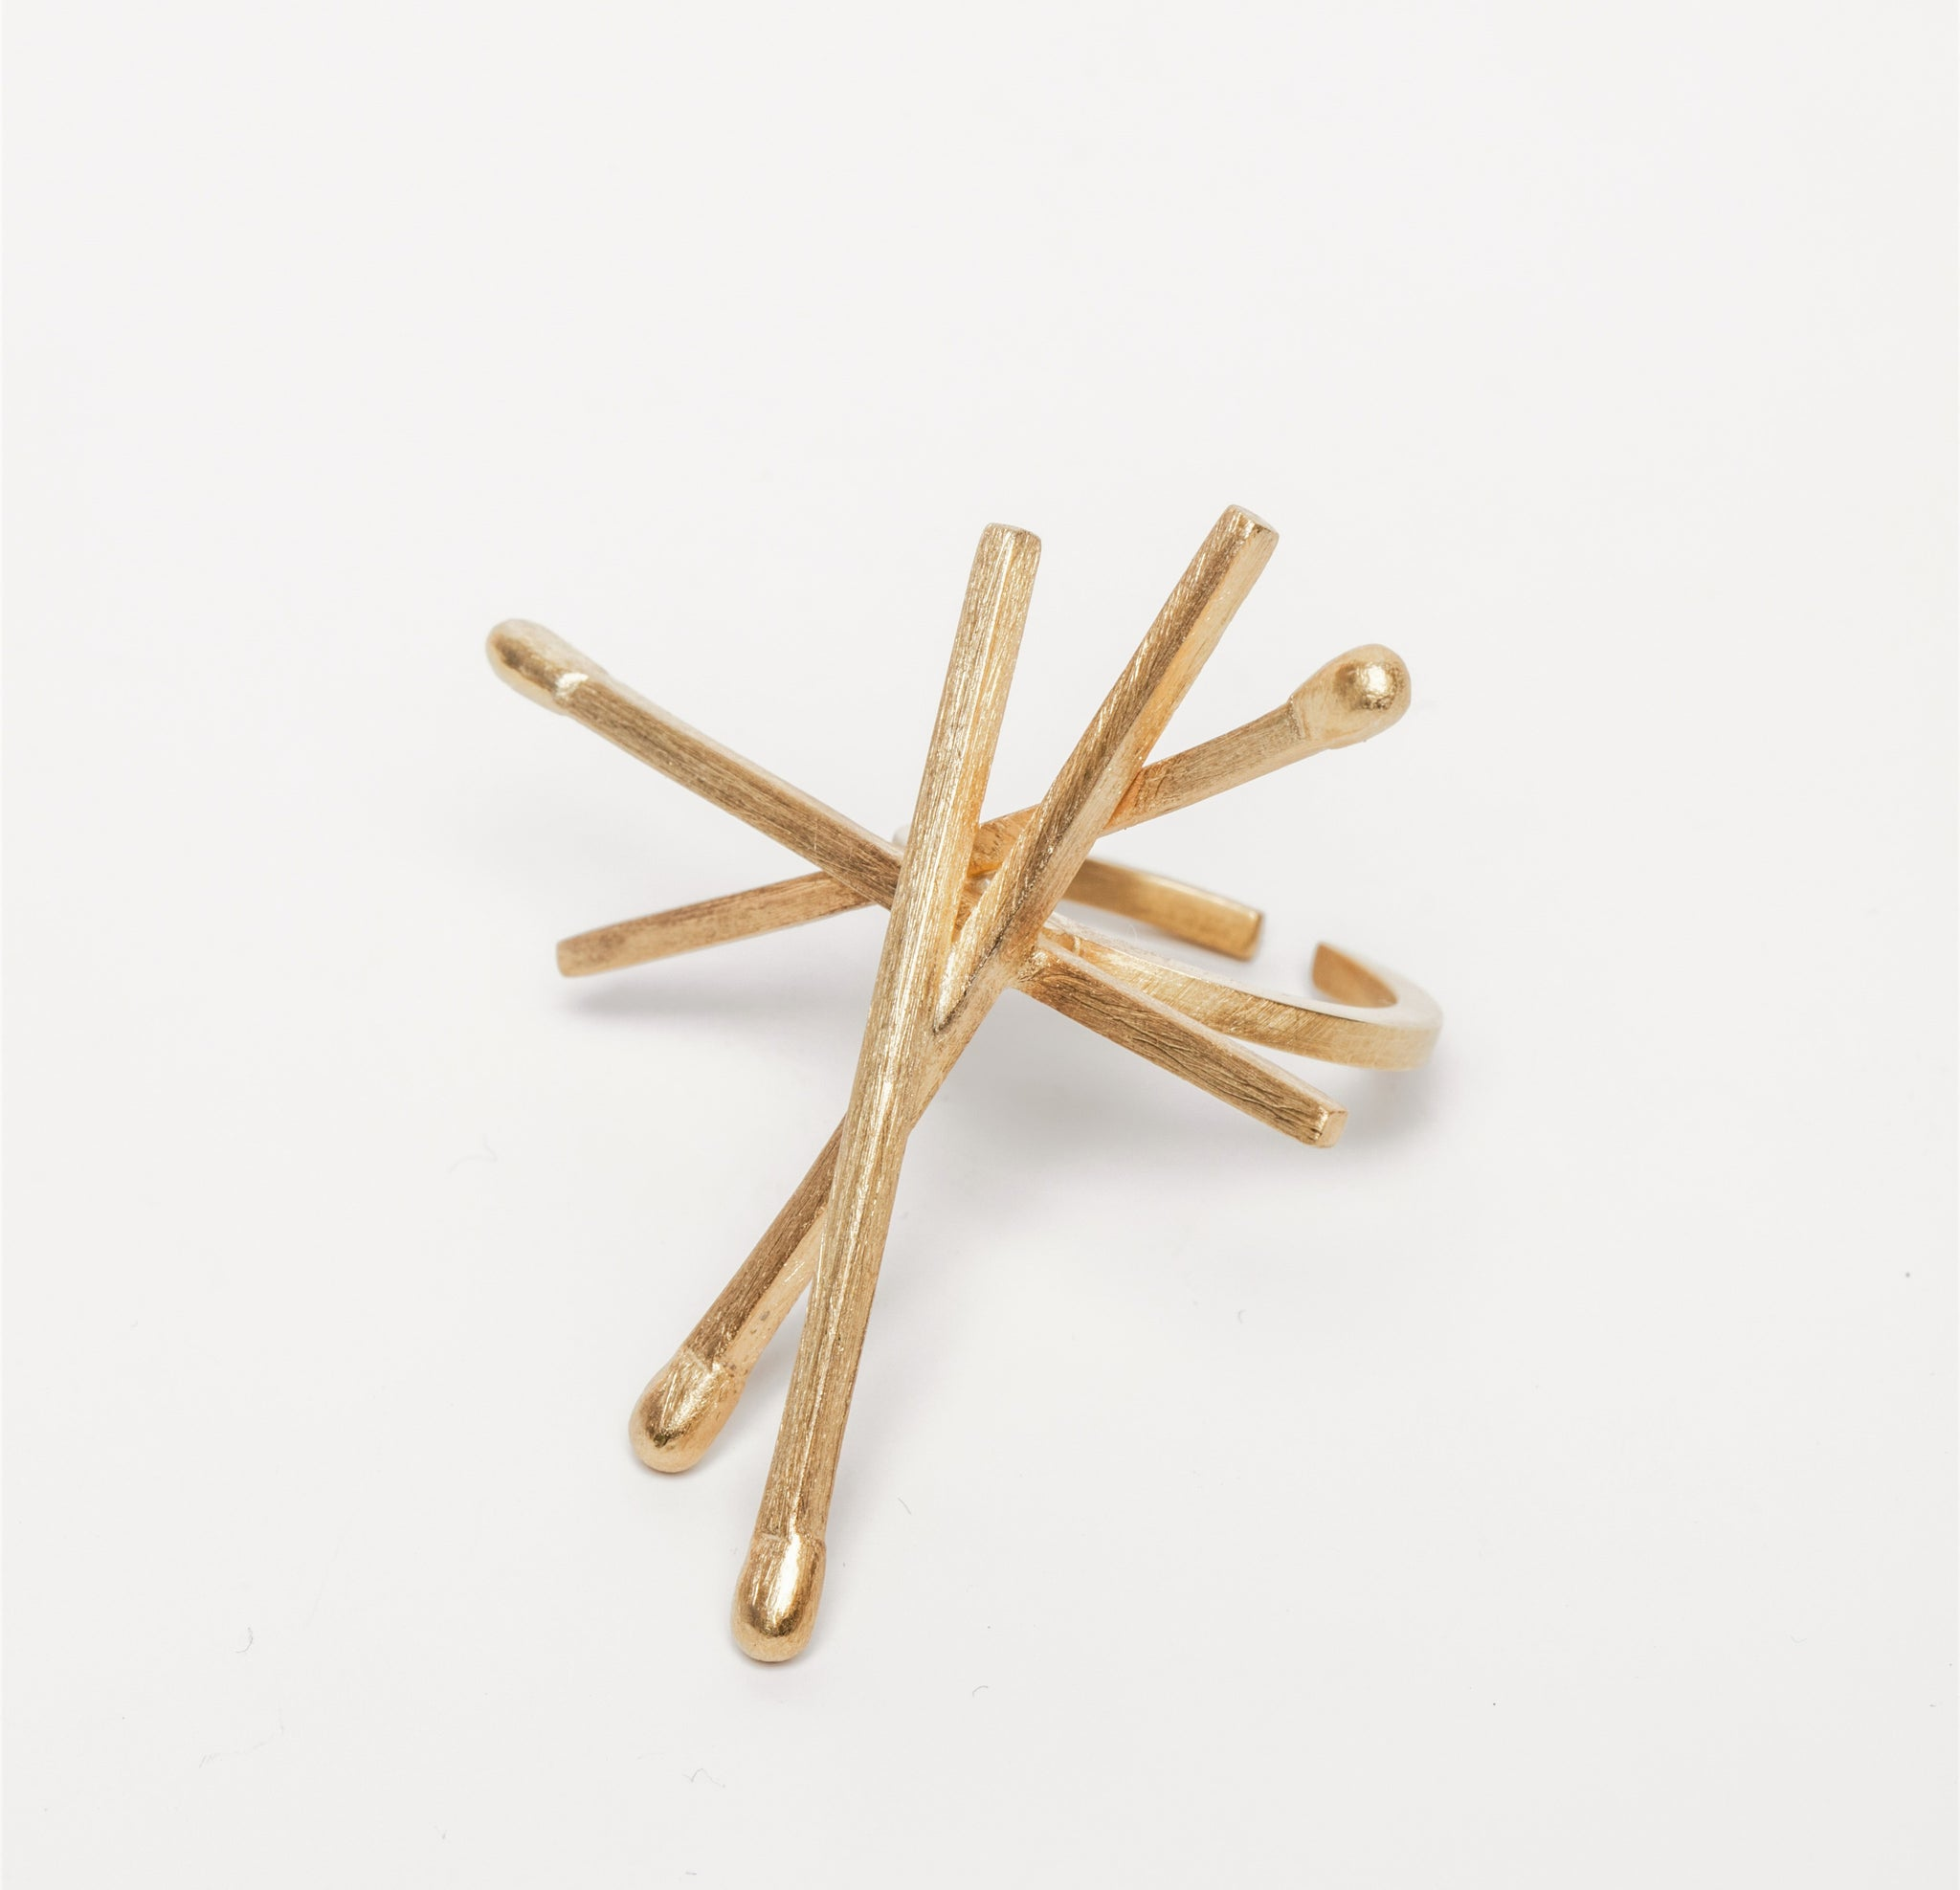 Gold plated sterling silver geometric ring. The ring weighs 8.8 gr and is part of Leonor Silva's Keep Hot jewellery collection